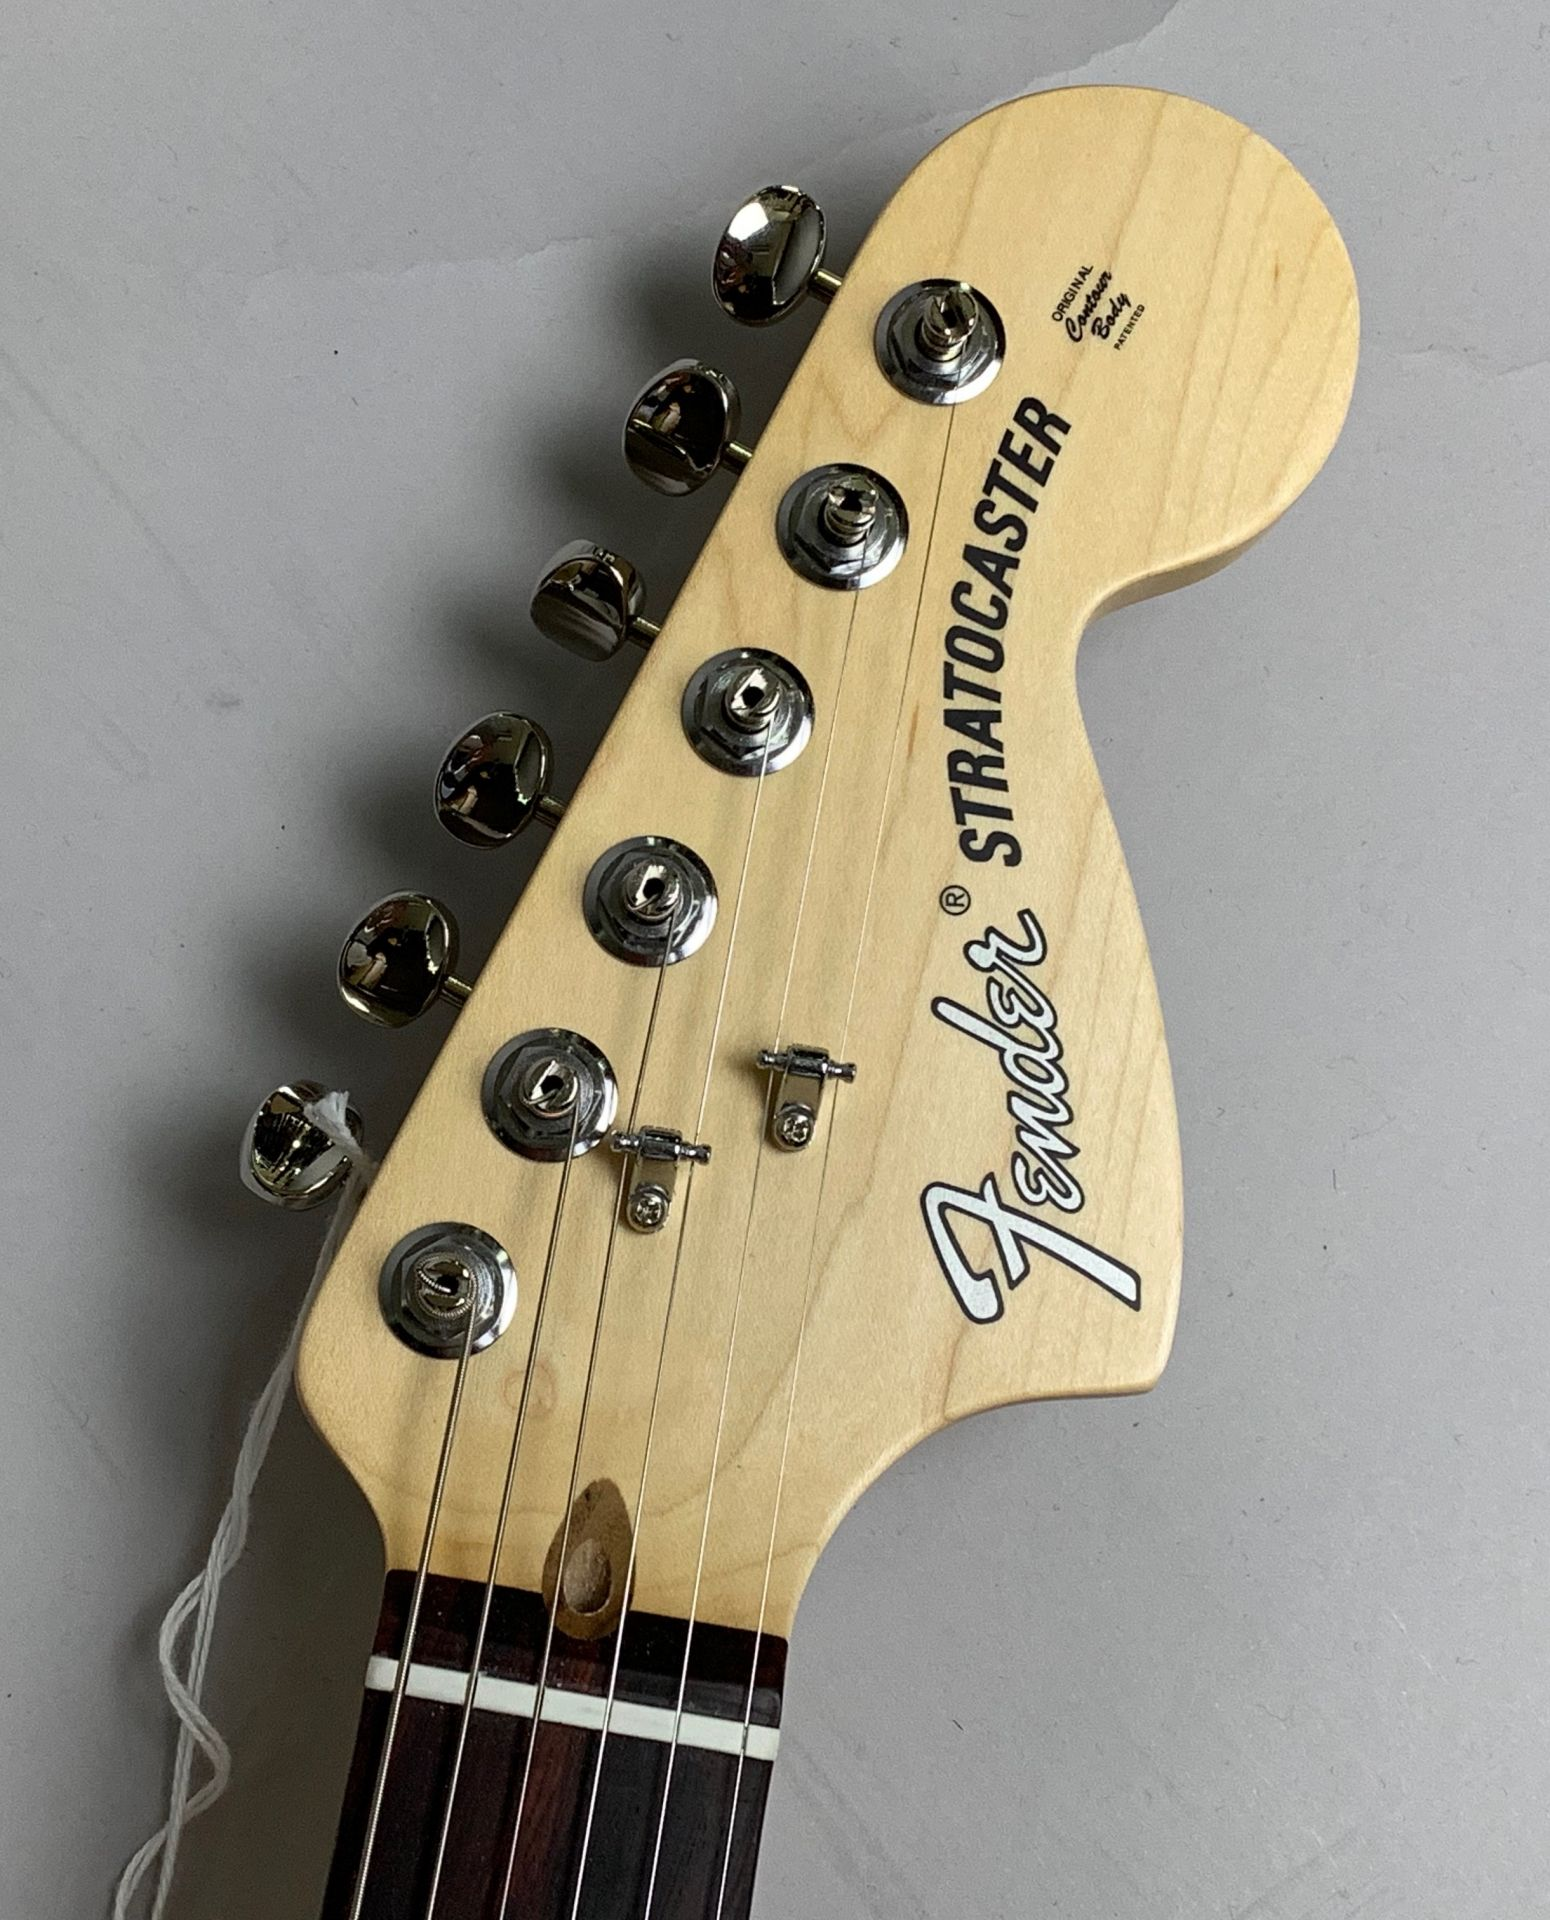 American Performer Stratocaster Rosewood Fingerboard Arctic Whiteのボディバック-アップ画像